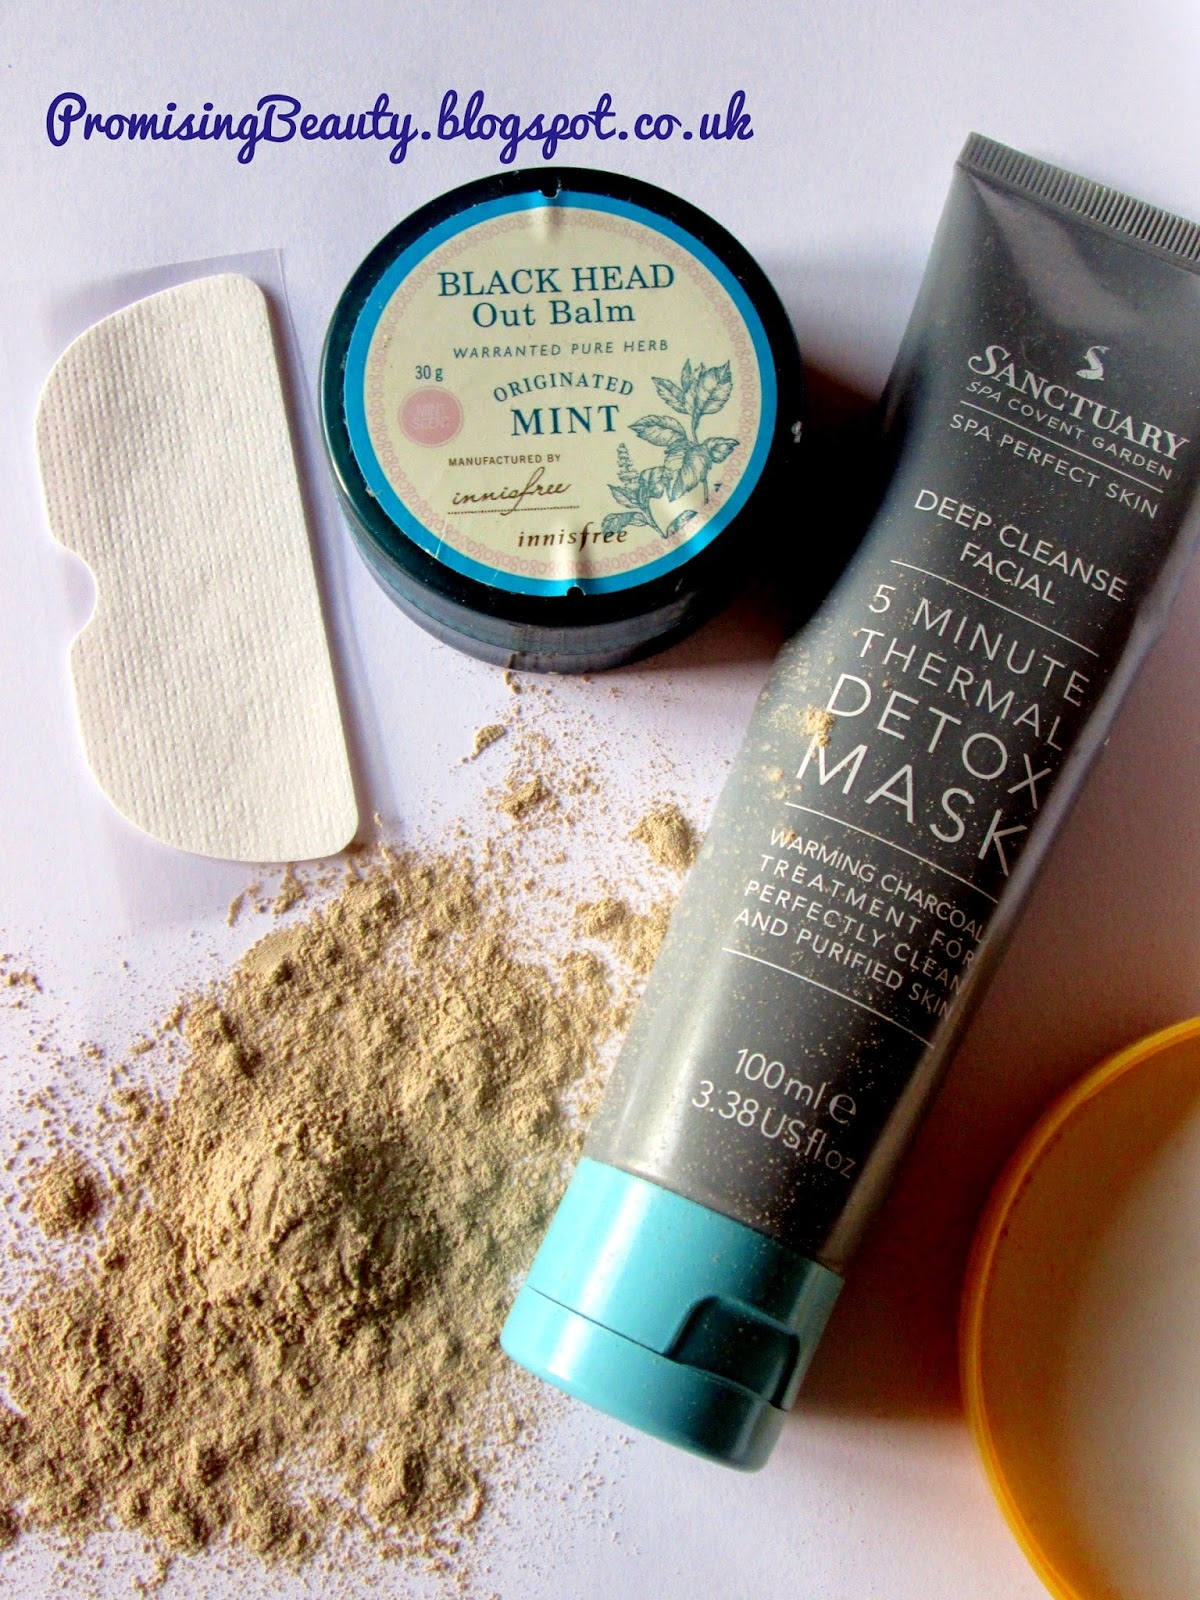 nose strip, bentonite clay, deep cleanse pore mask and innisfree blackhead out balm